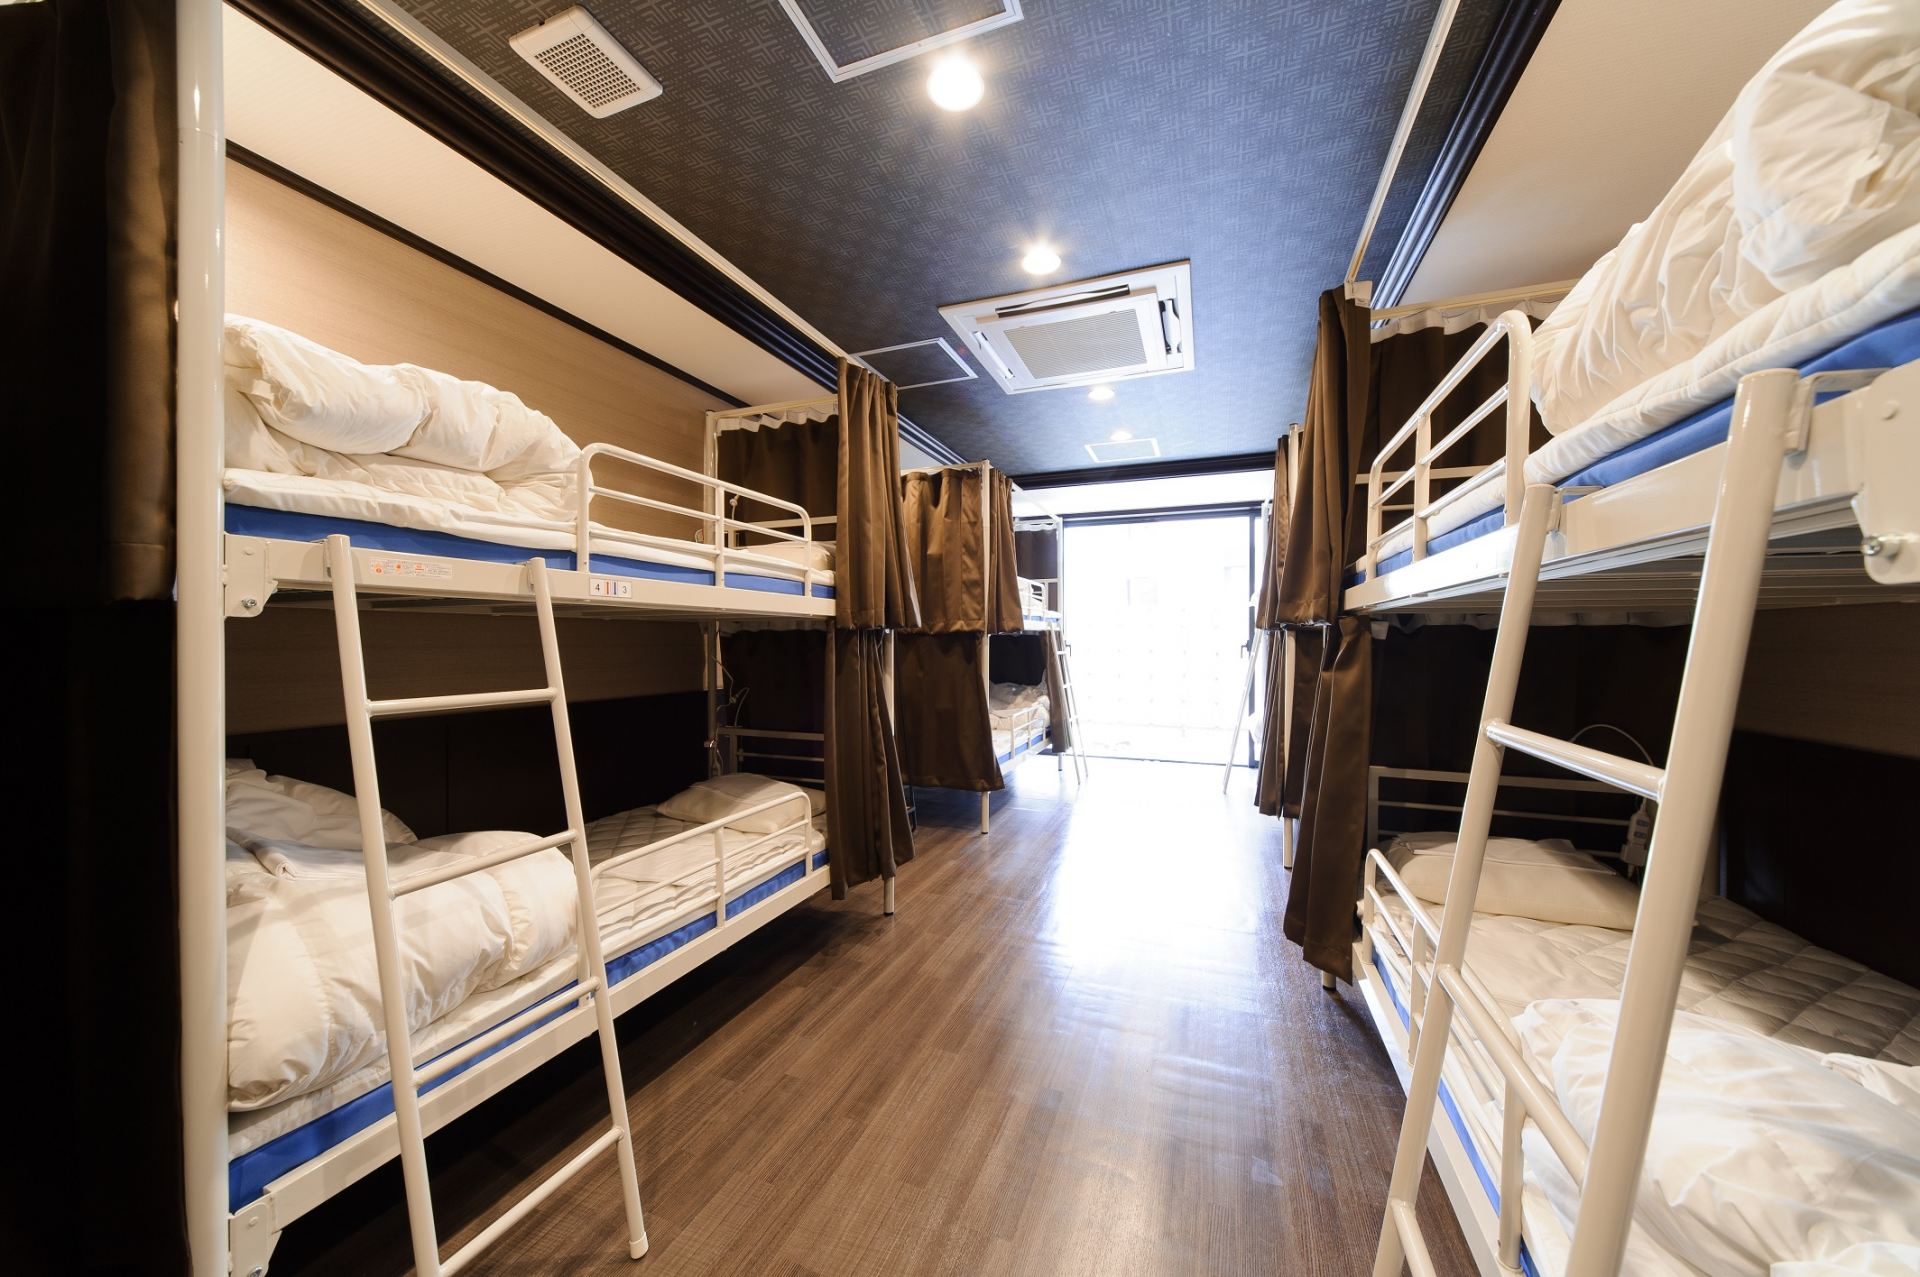 Bunk Bed Dormitory Room (from 2,300 yen)